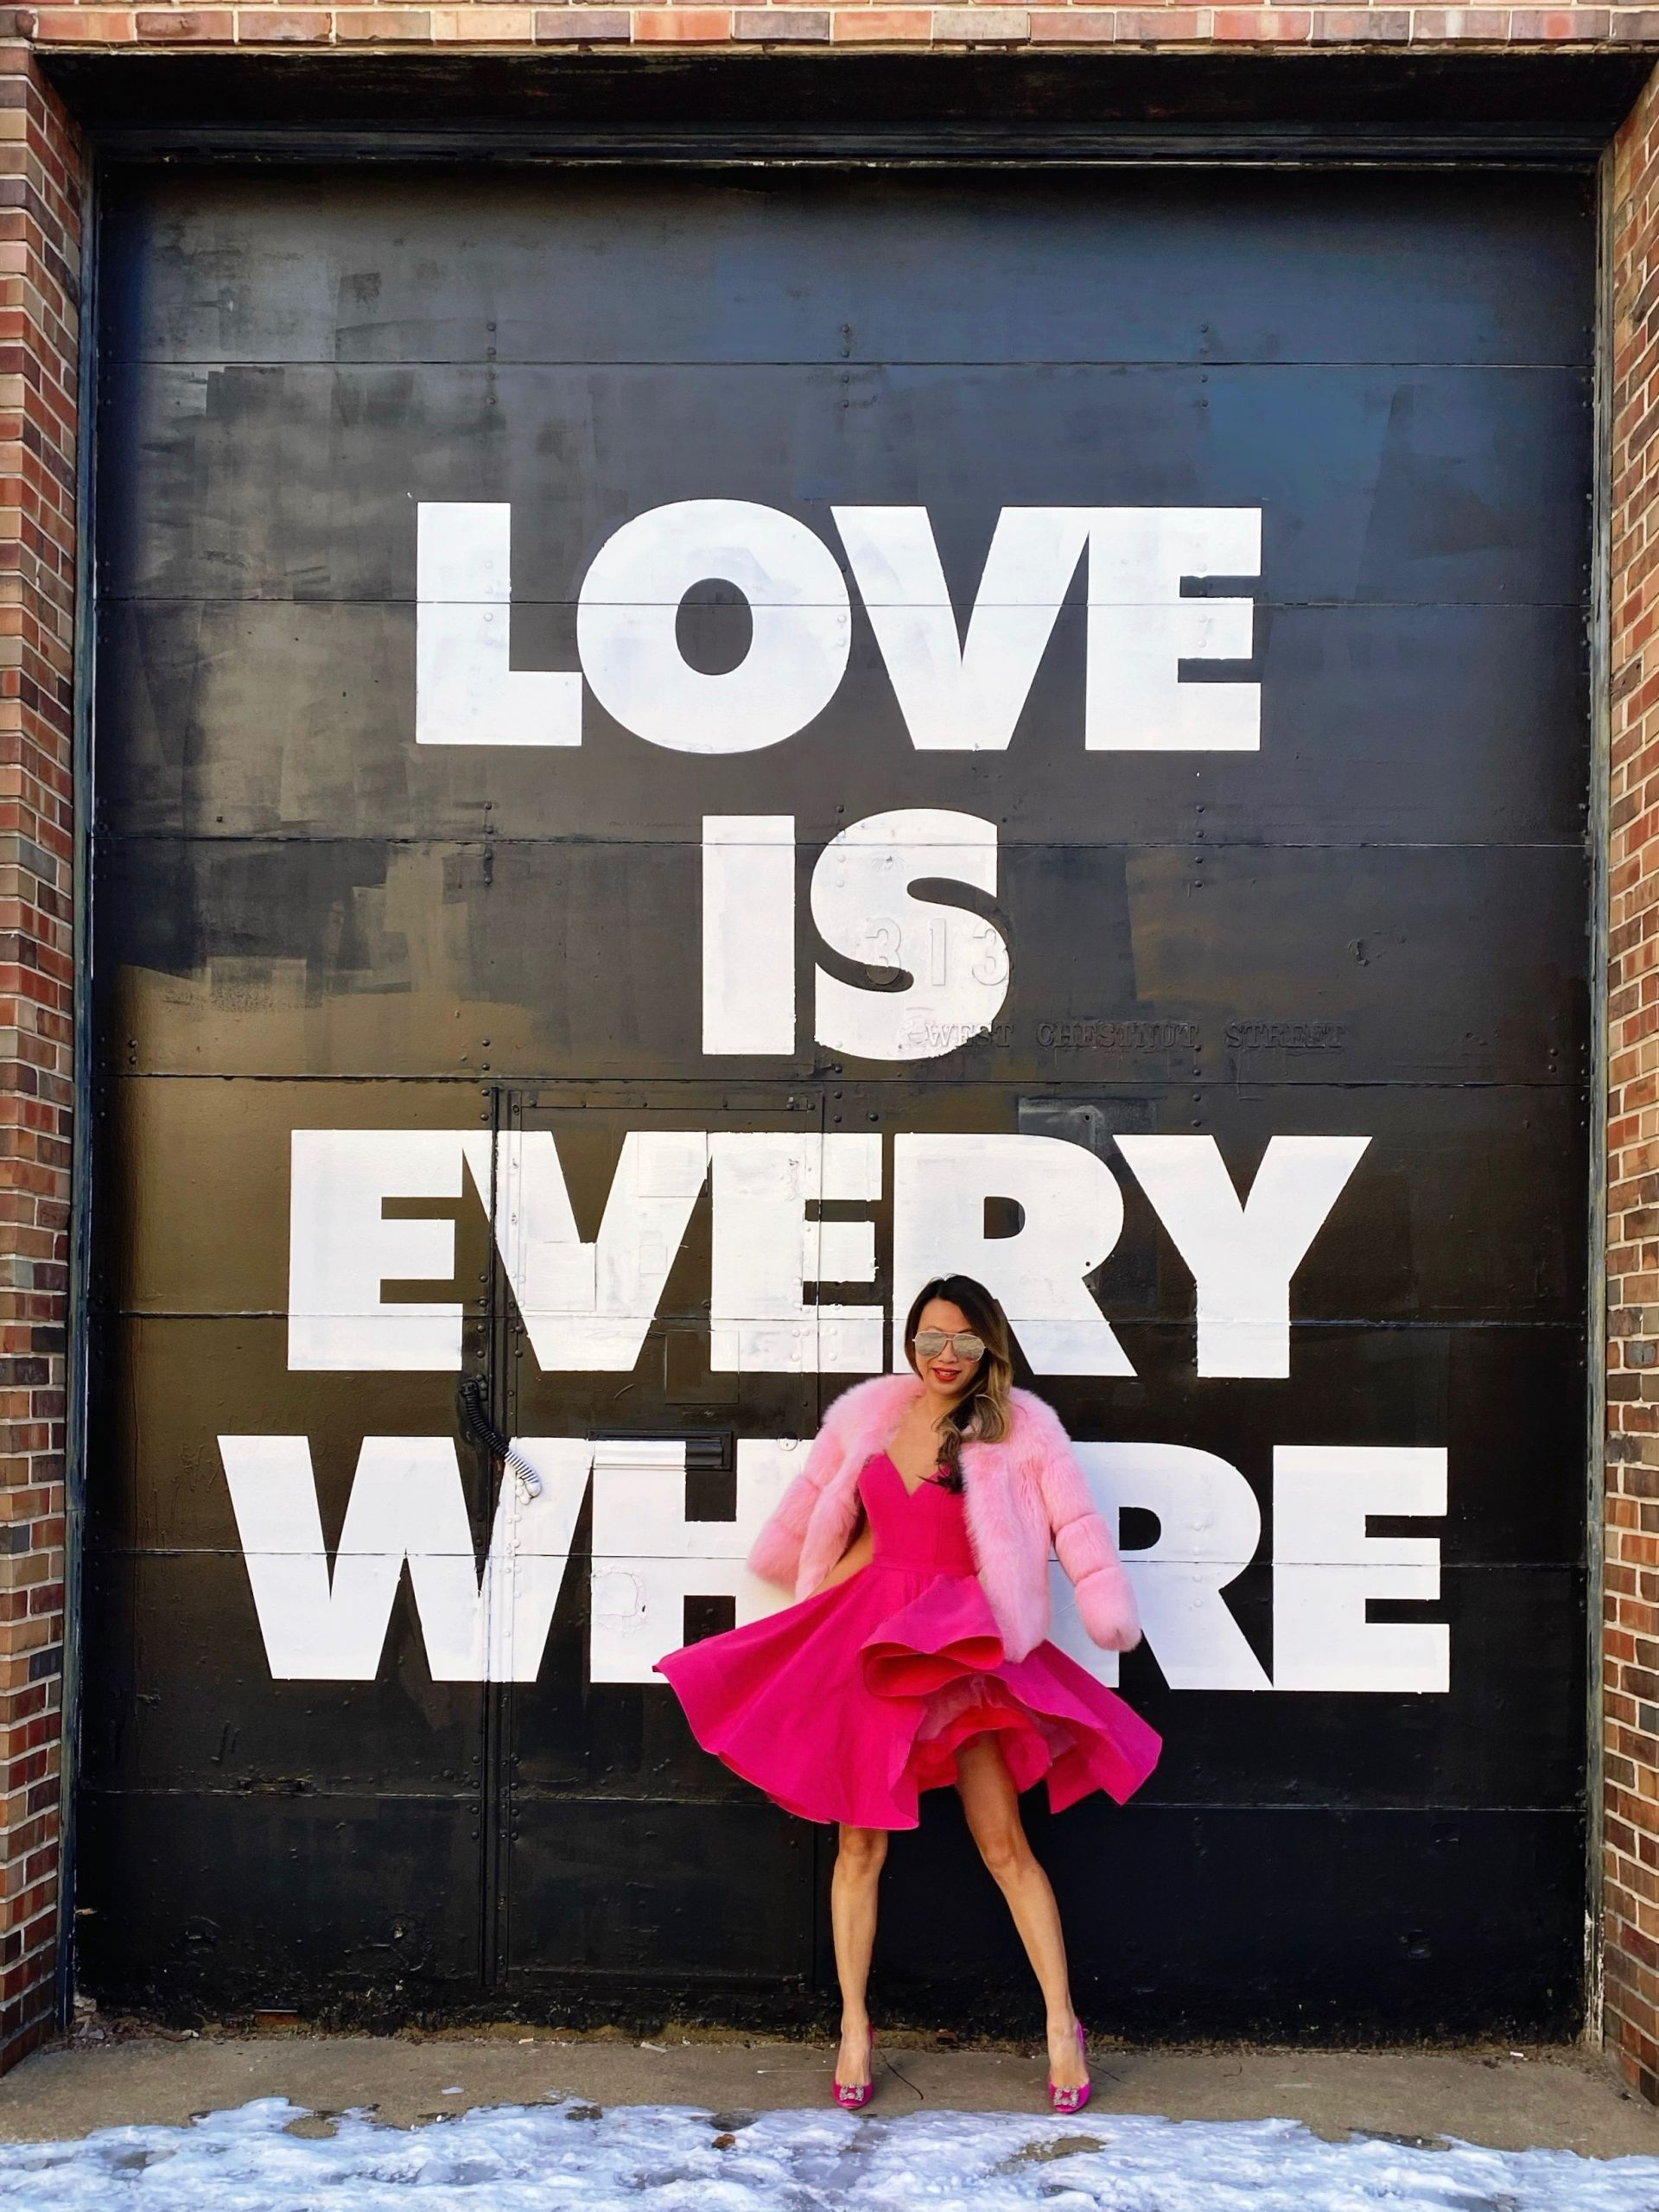 Top 10 Best Instagrammable Walls in Chicago, wall art in chicago, street art in chicago, best wall murals in chicago, photography in chicago, instagram chicago, best places to take photos in chicago, photoshoots in chicago, wall murals in chicago, wall guide, best wall art in chicago, 2020 murals in chicago, chicago guide, chicago blogger, chicago travel, chicago photography, chicago wall art, chicago murals, chicago art, love mural, love is every where chicago mural, heart mural